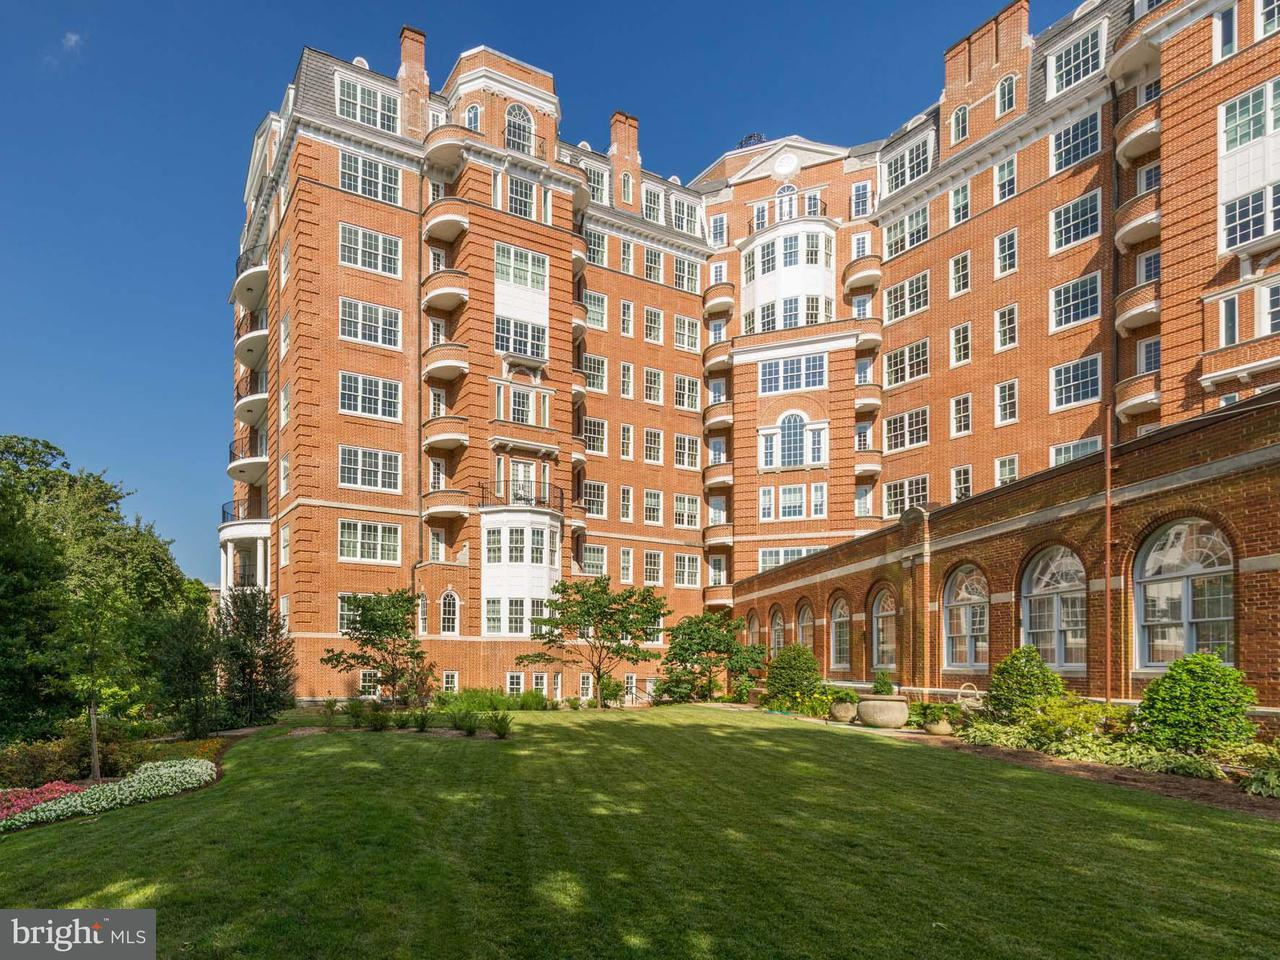 Additional photo for property listing at 2660 Connecticut Ave Nw #5b 2660 Connecticut Ave Nw #5b Washington, District Of Columbia 20008 Vereinigte Staaten